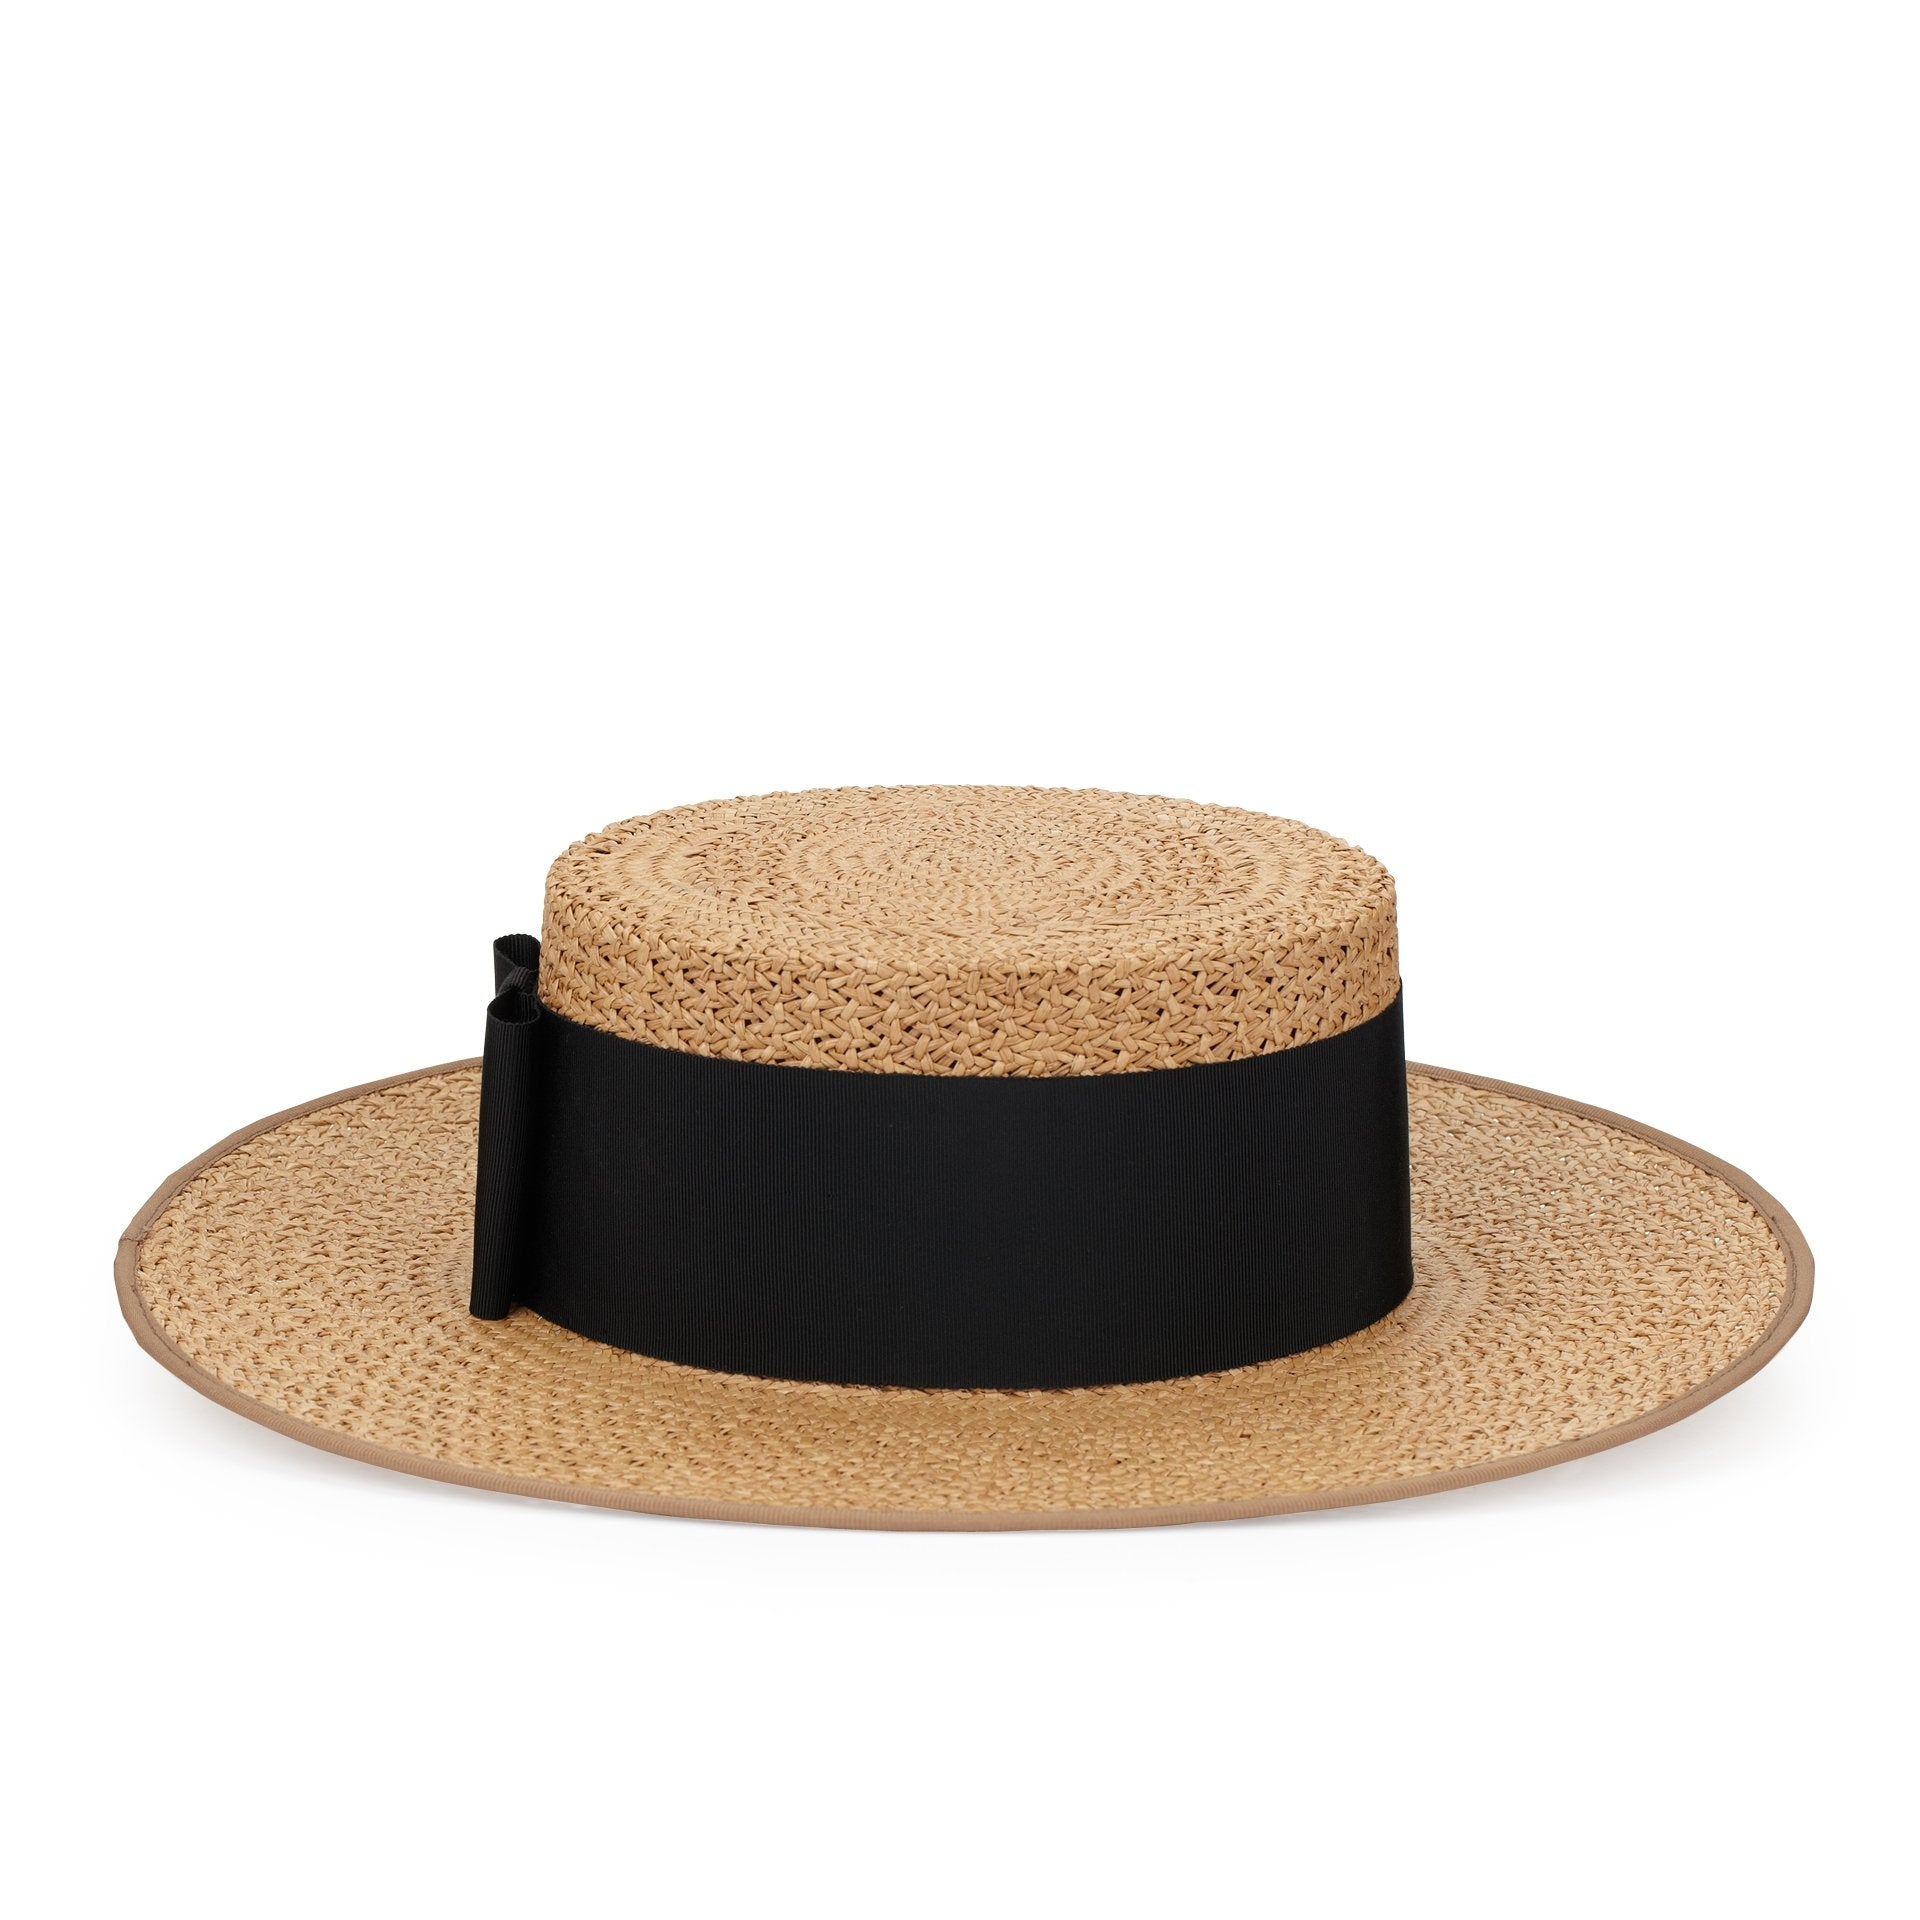 The Fleur boater - Women's hats - Lock & Co. Hatters London UK